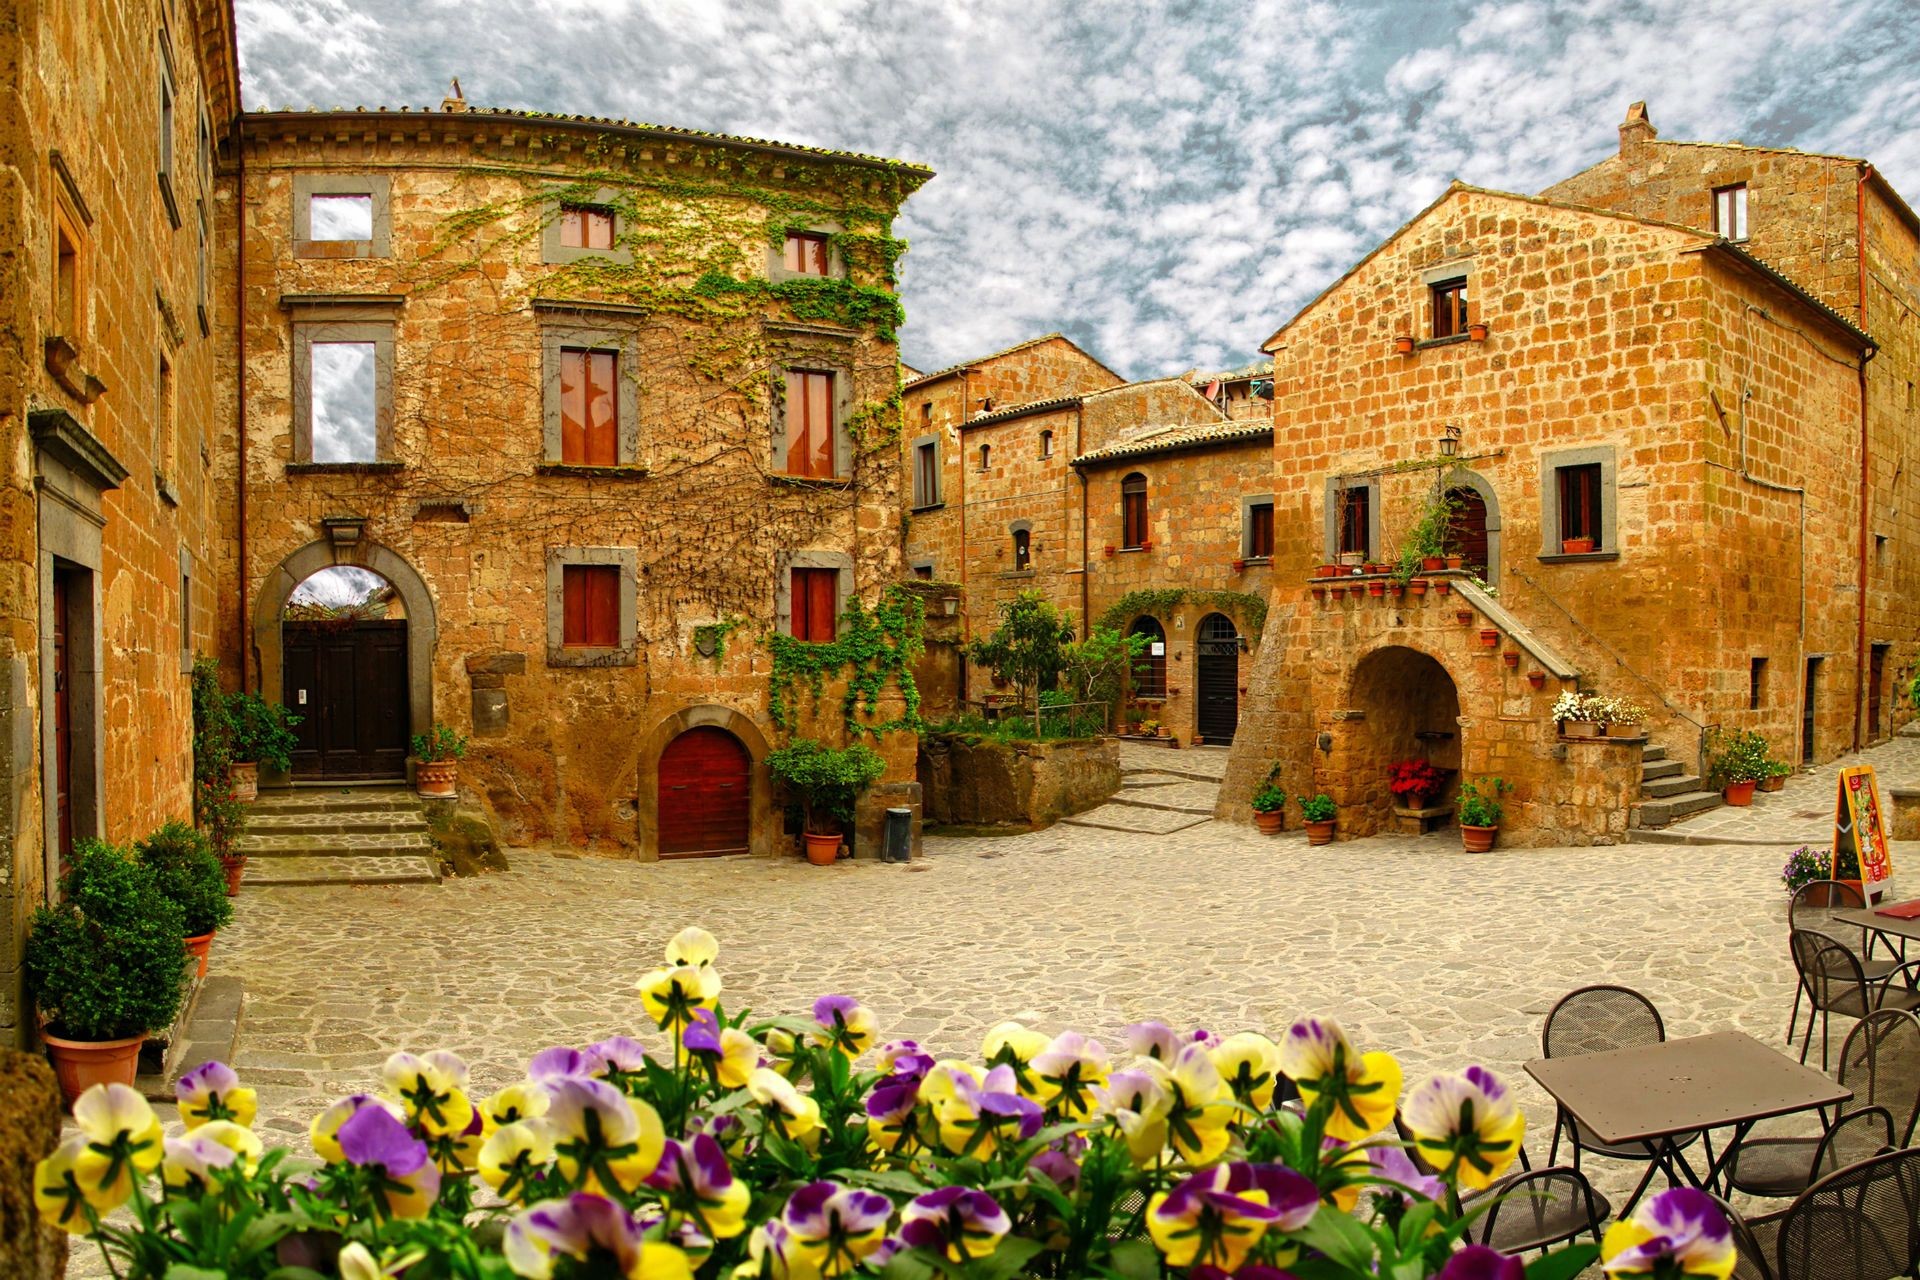 Wallpapers Of Italy Resultado De Imagen Para Wallpapers Italy Italy Pictures